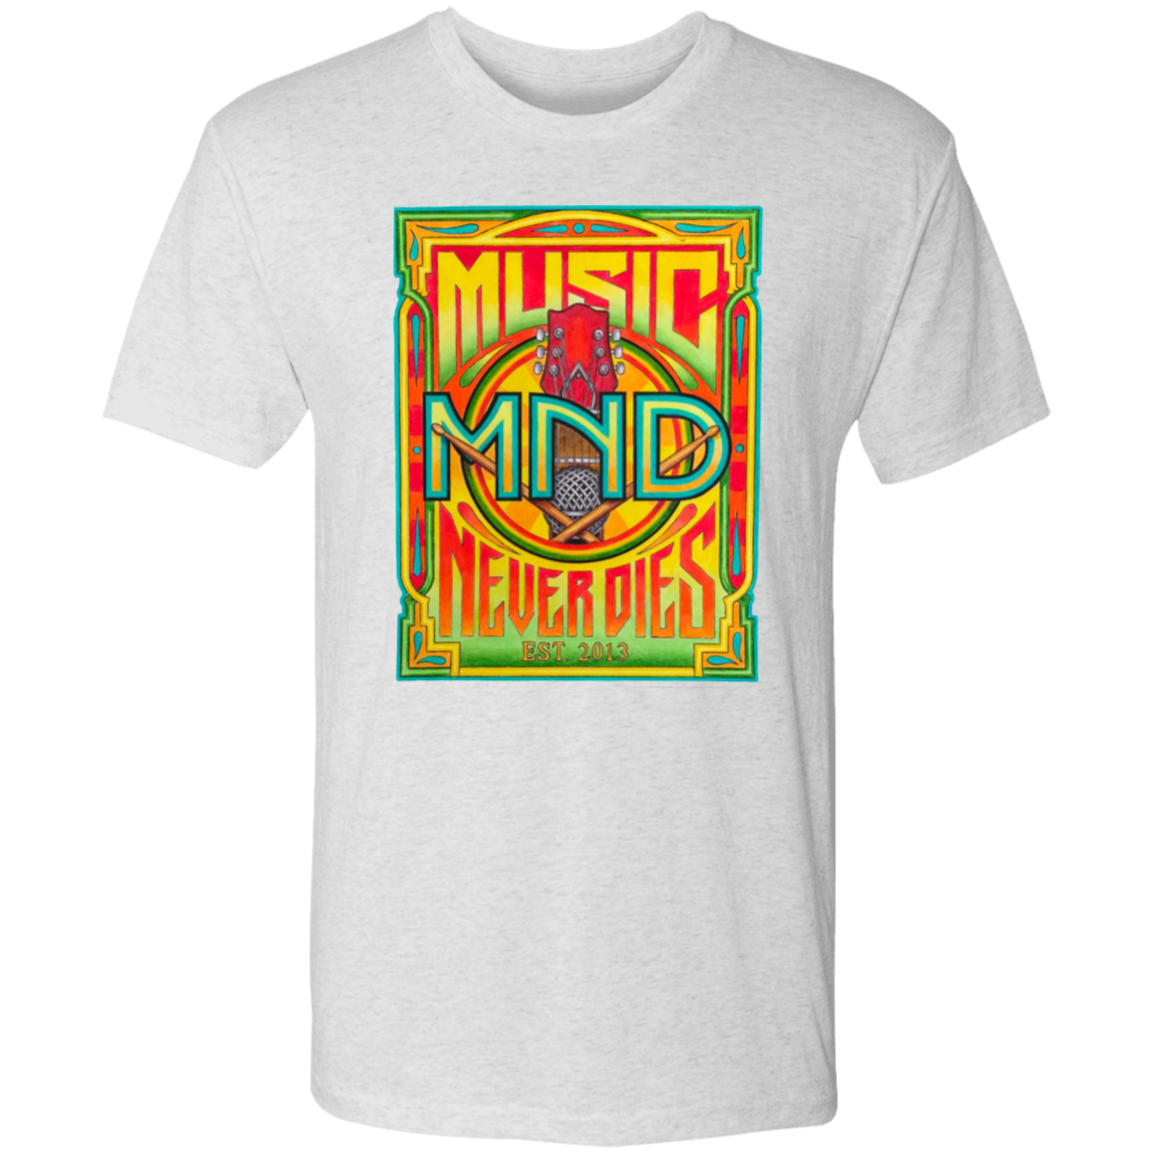 Music Never Dies Men's Vintage Poster T-Shirt